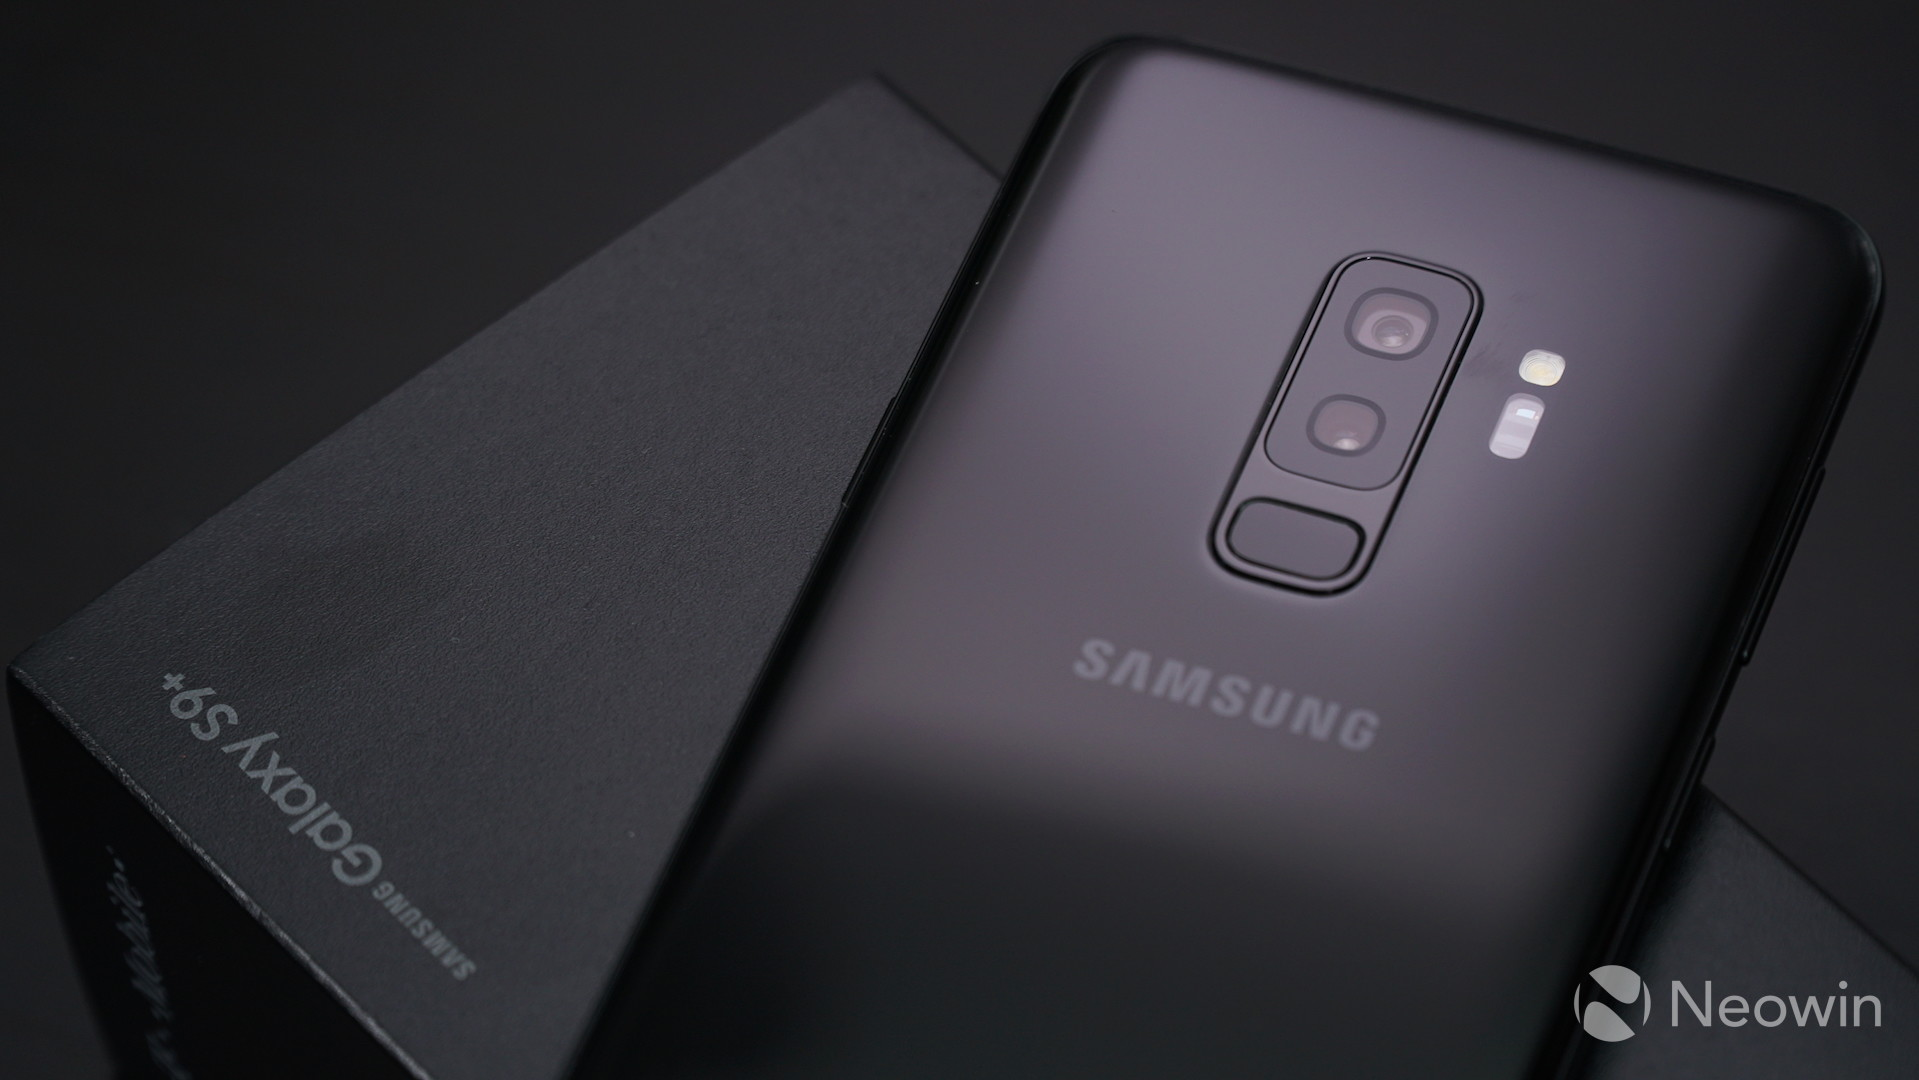 Samsung Galaxy S9+ review: Greater than the sum of its parts